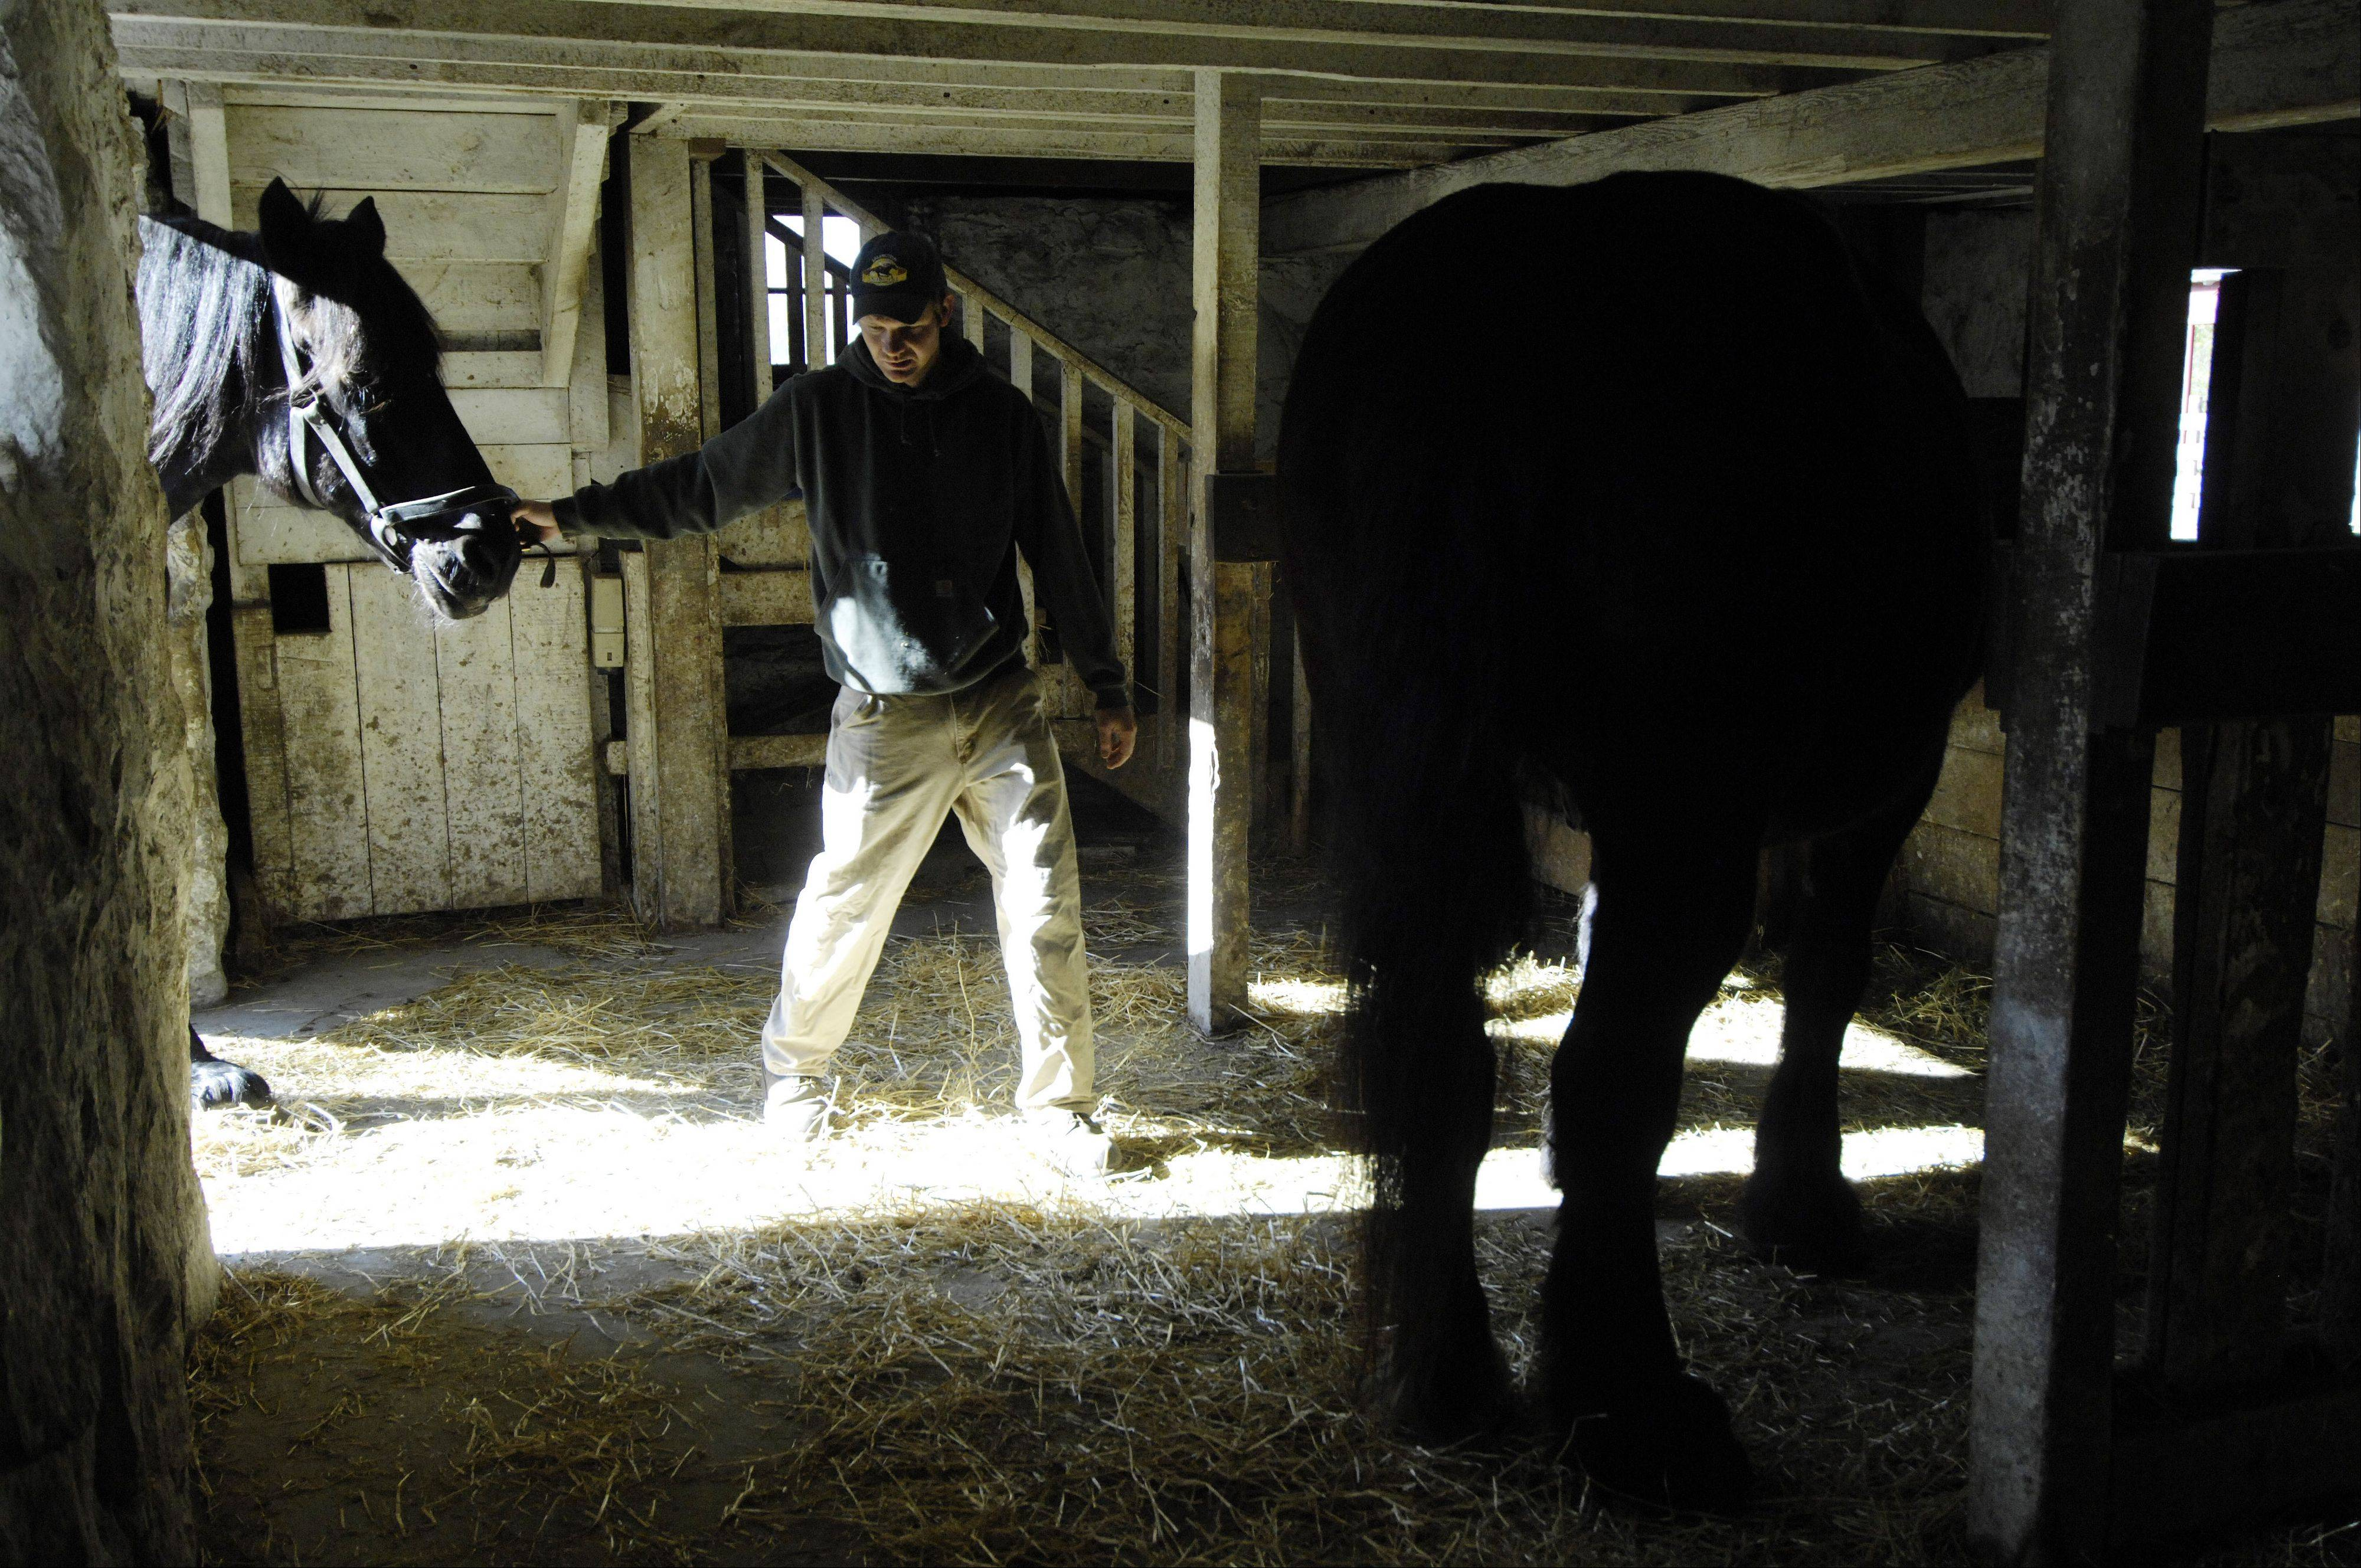 Zimmerman brings the horses into the barn for grooming.